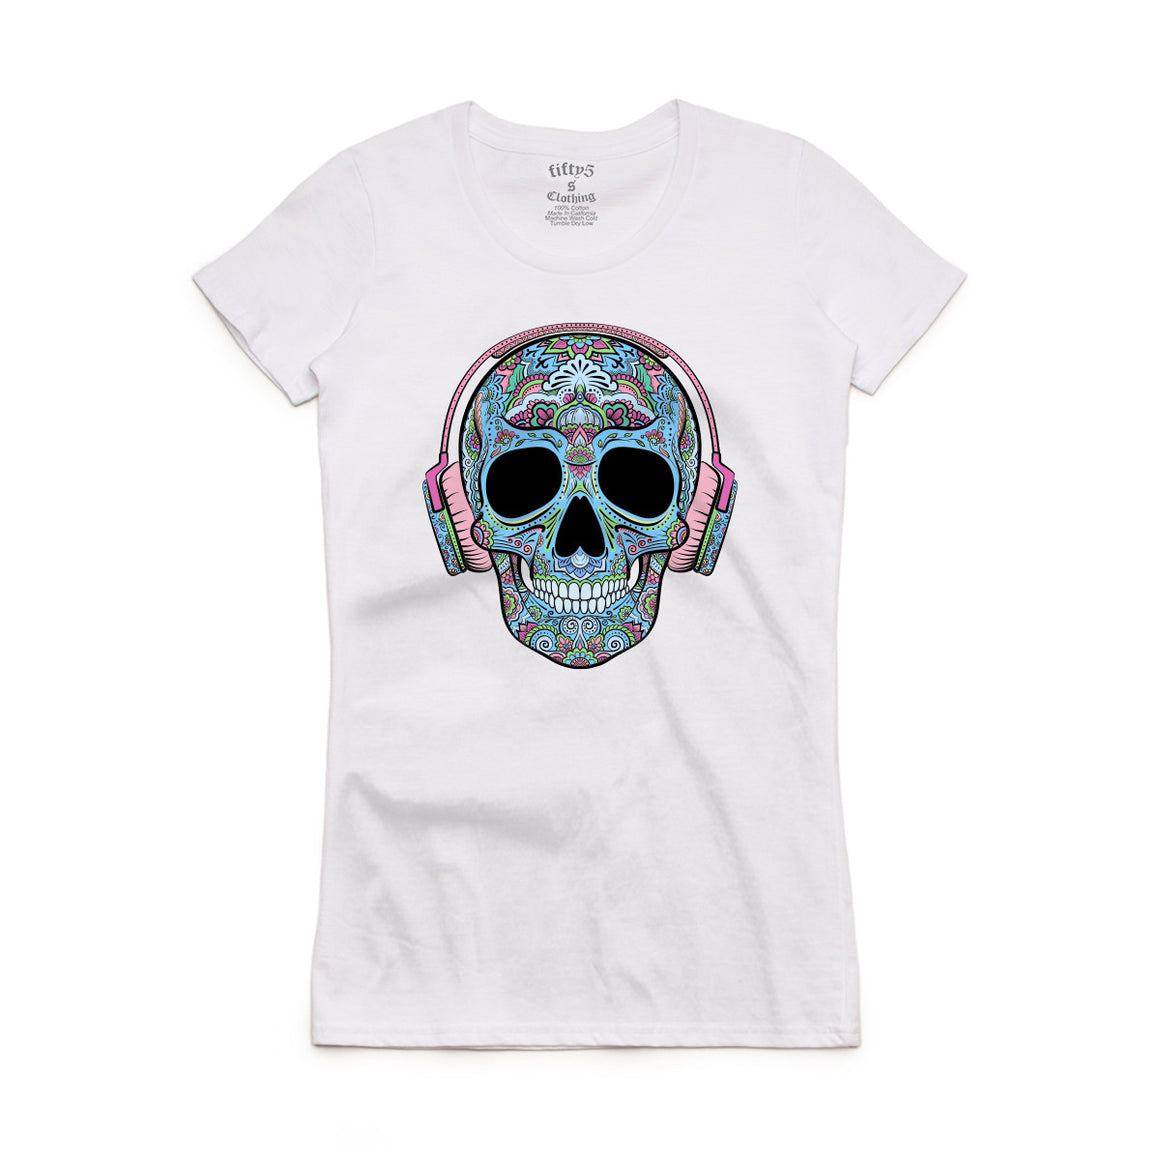 Fifty5 Clothing Blue Sugar Skull in Headphones Women's Crew Neck T-Shirt